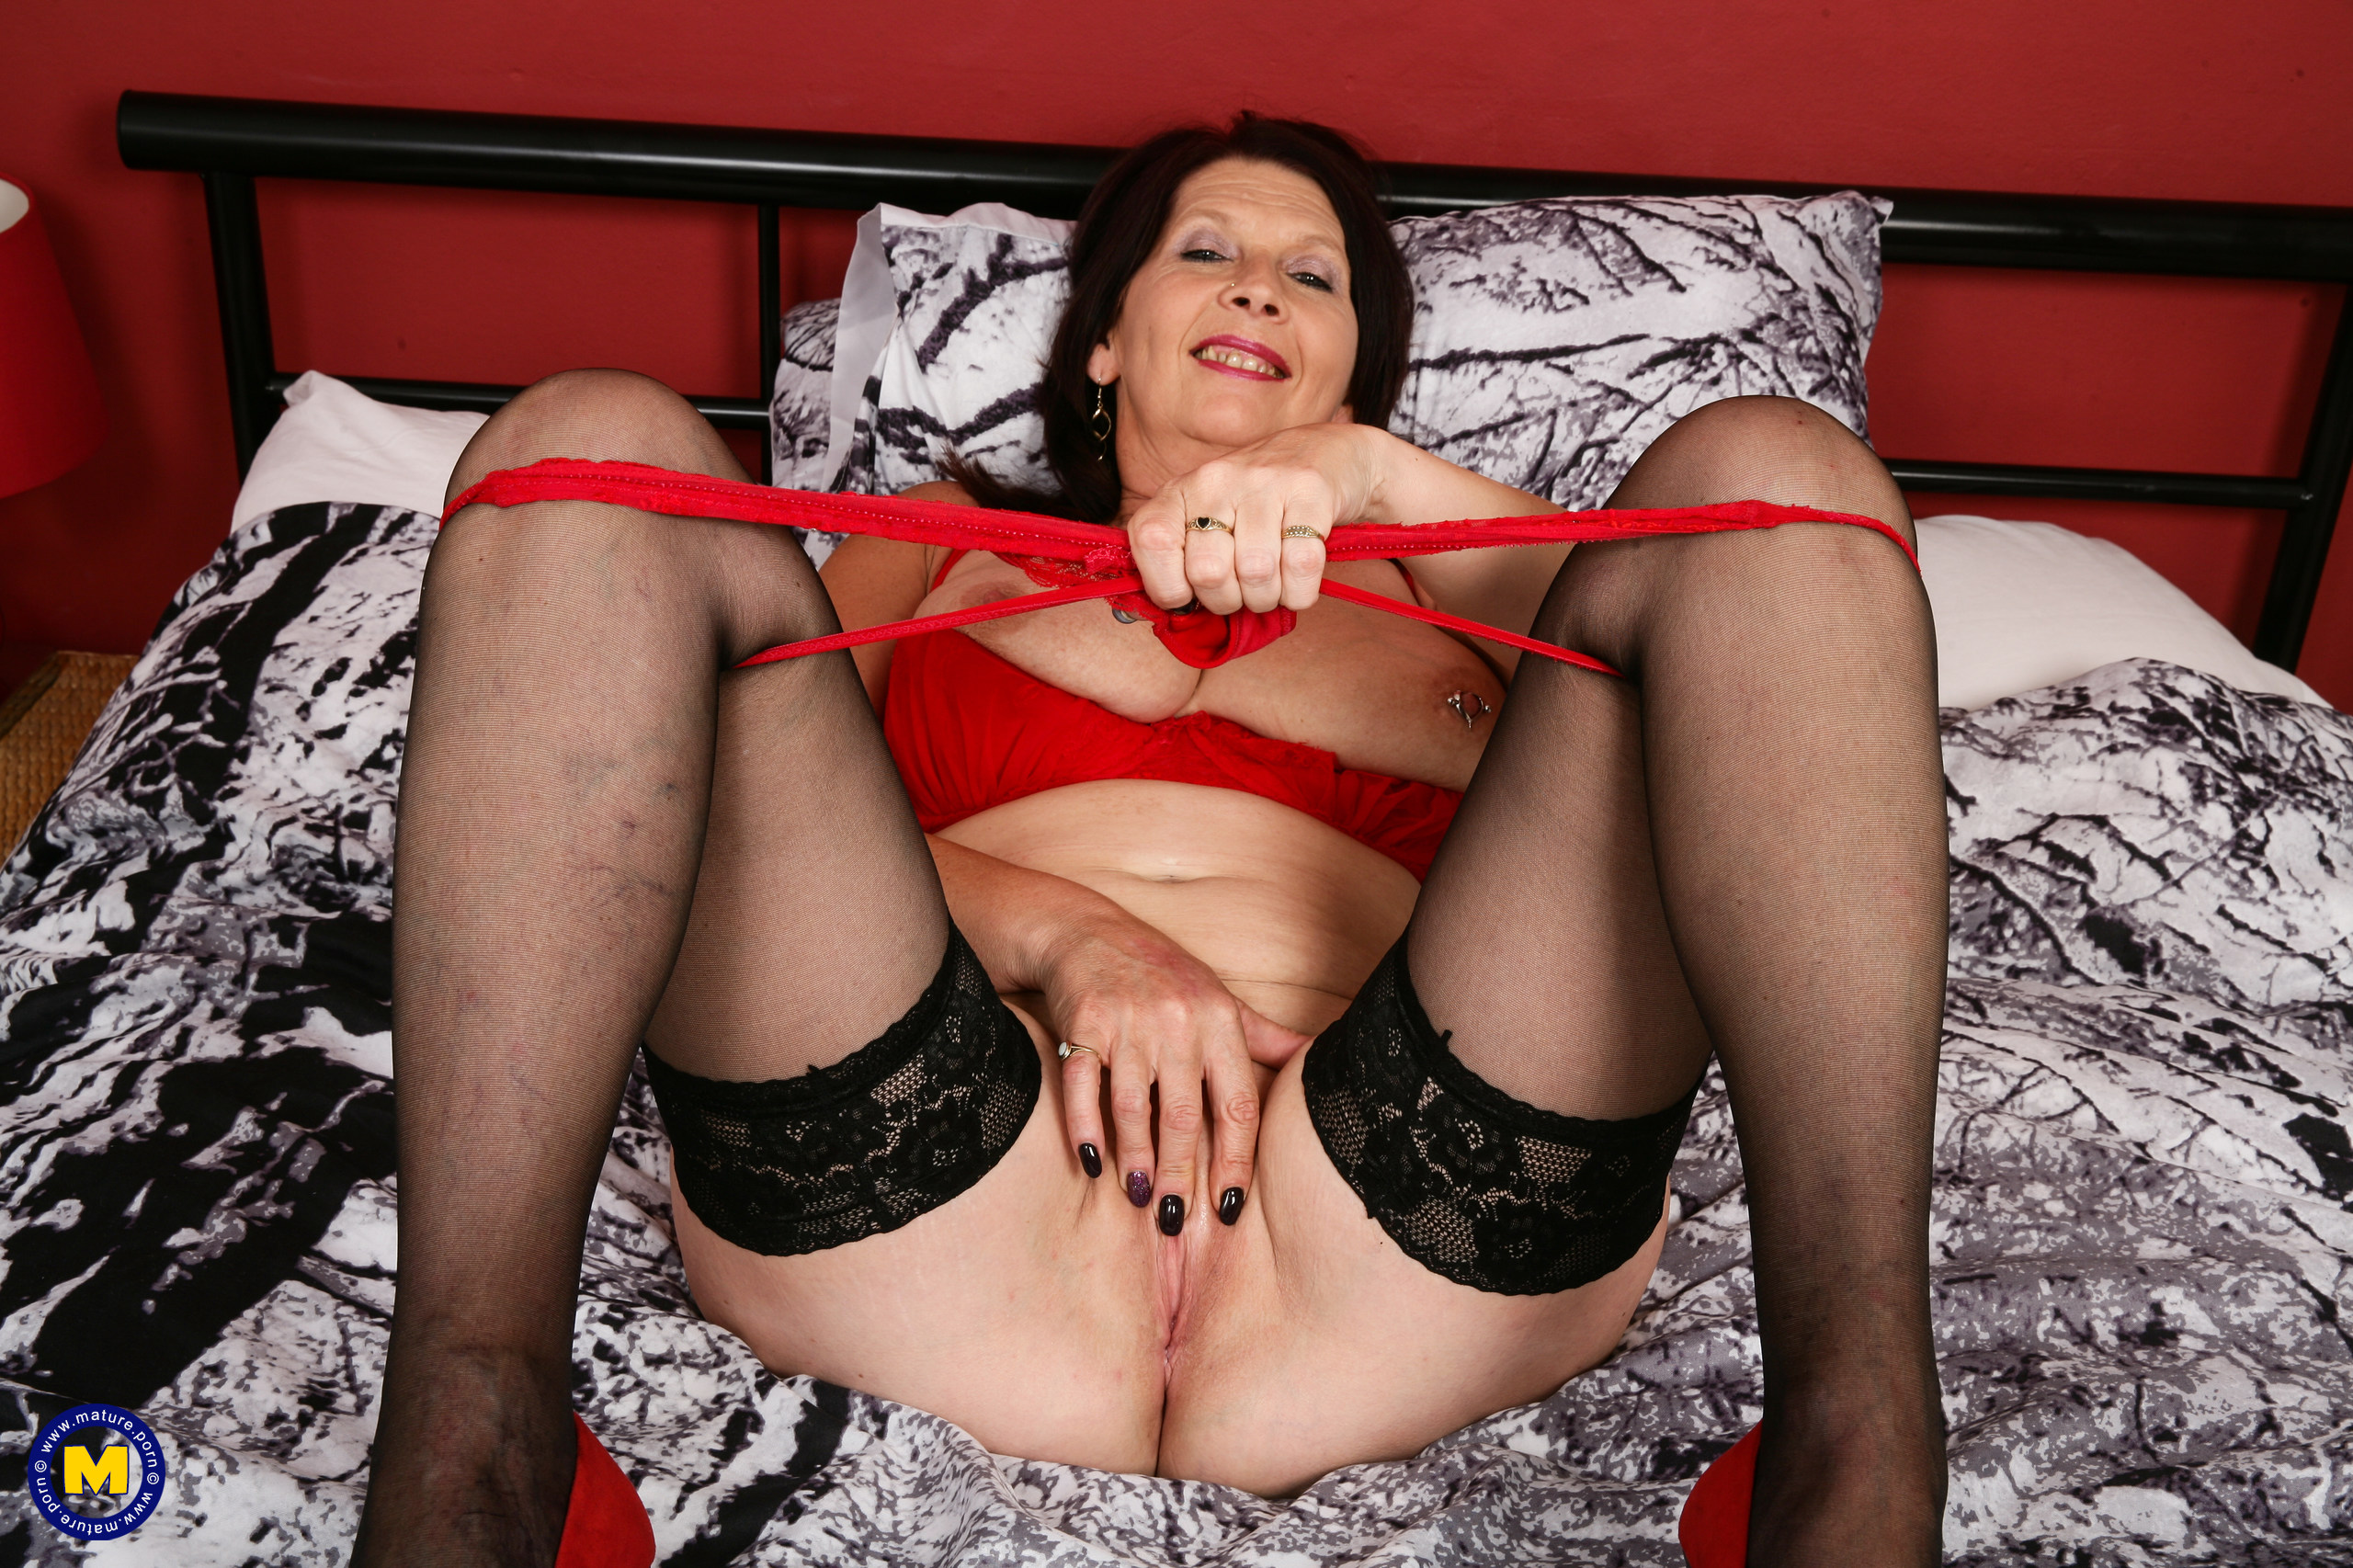 Kinky mature mega-bitch from the UK getting humid and horny